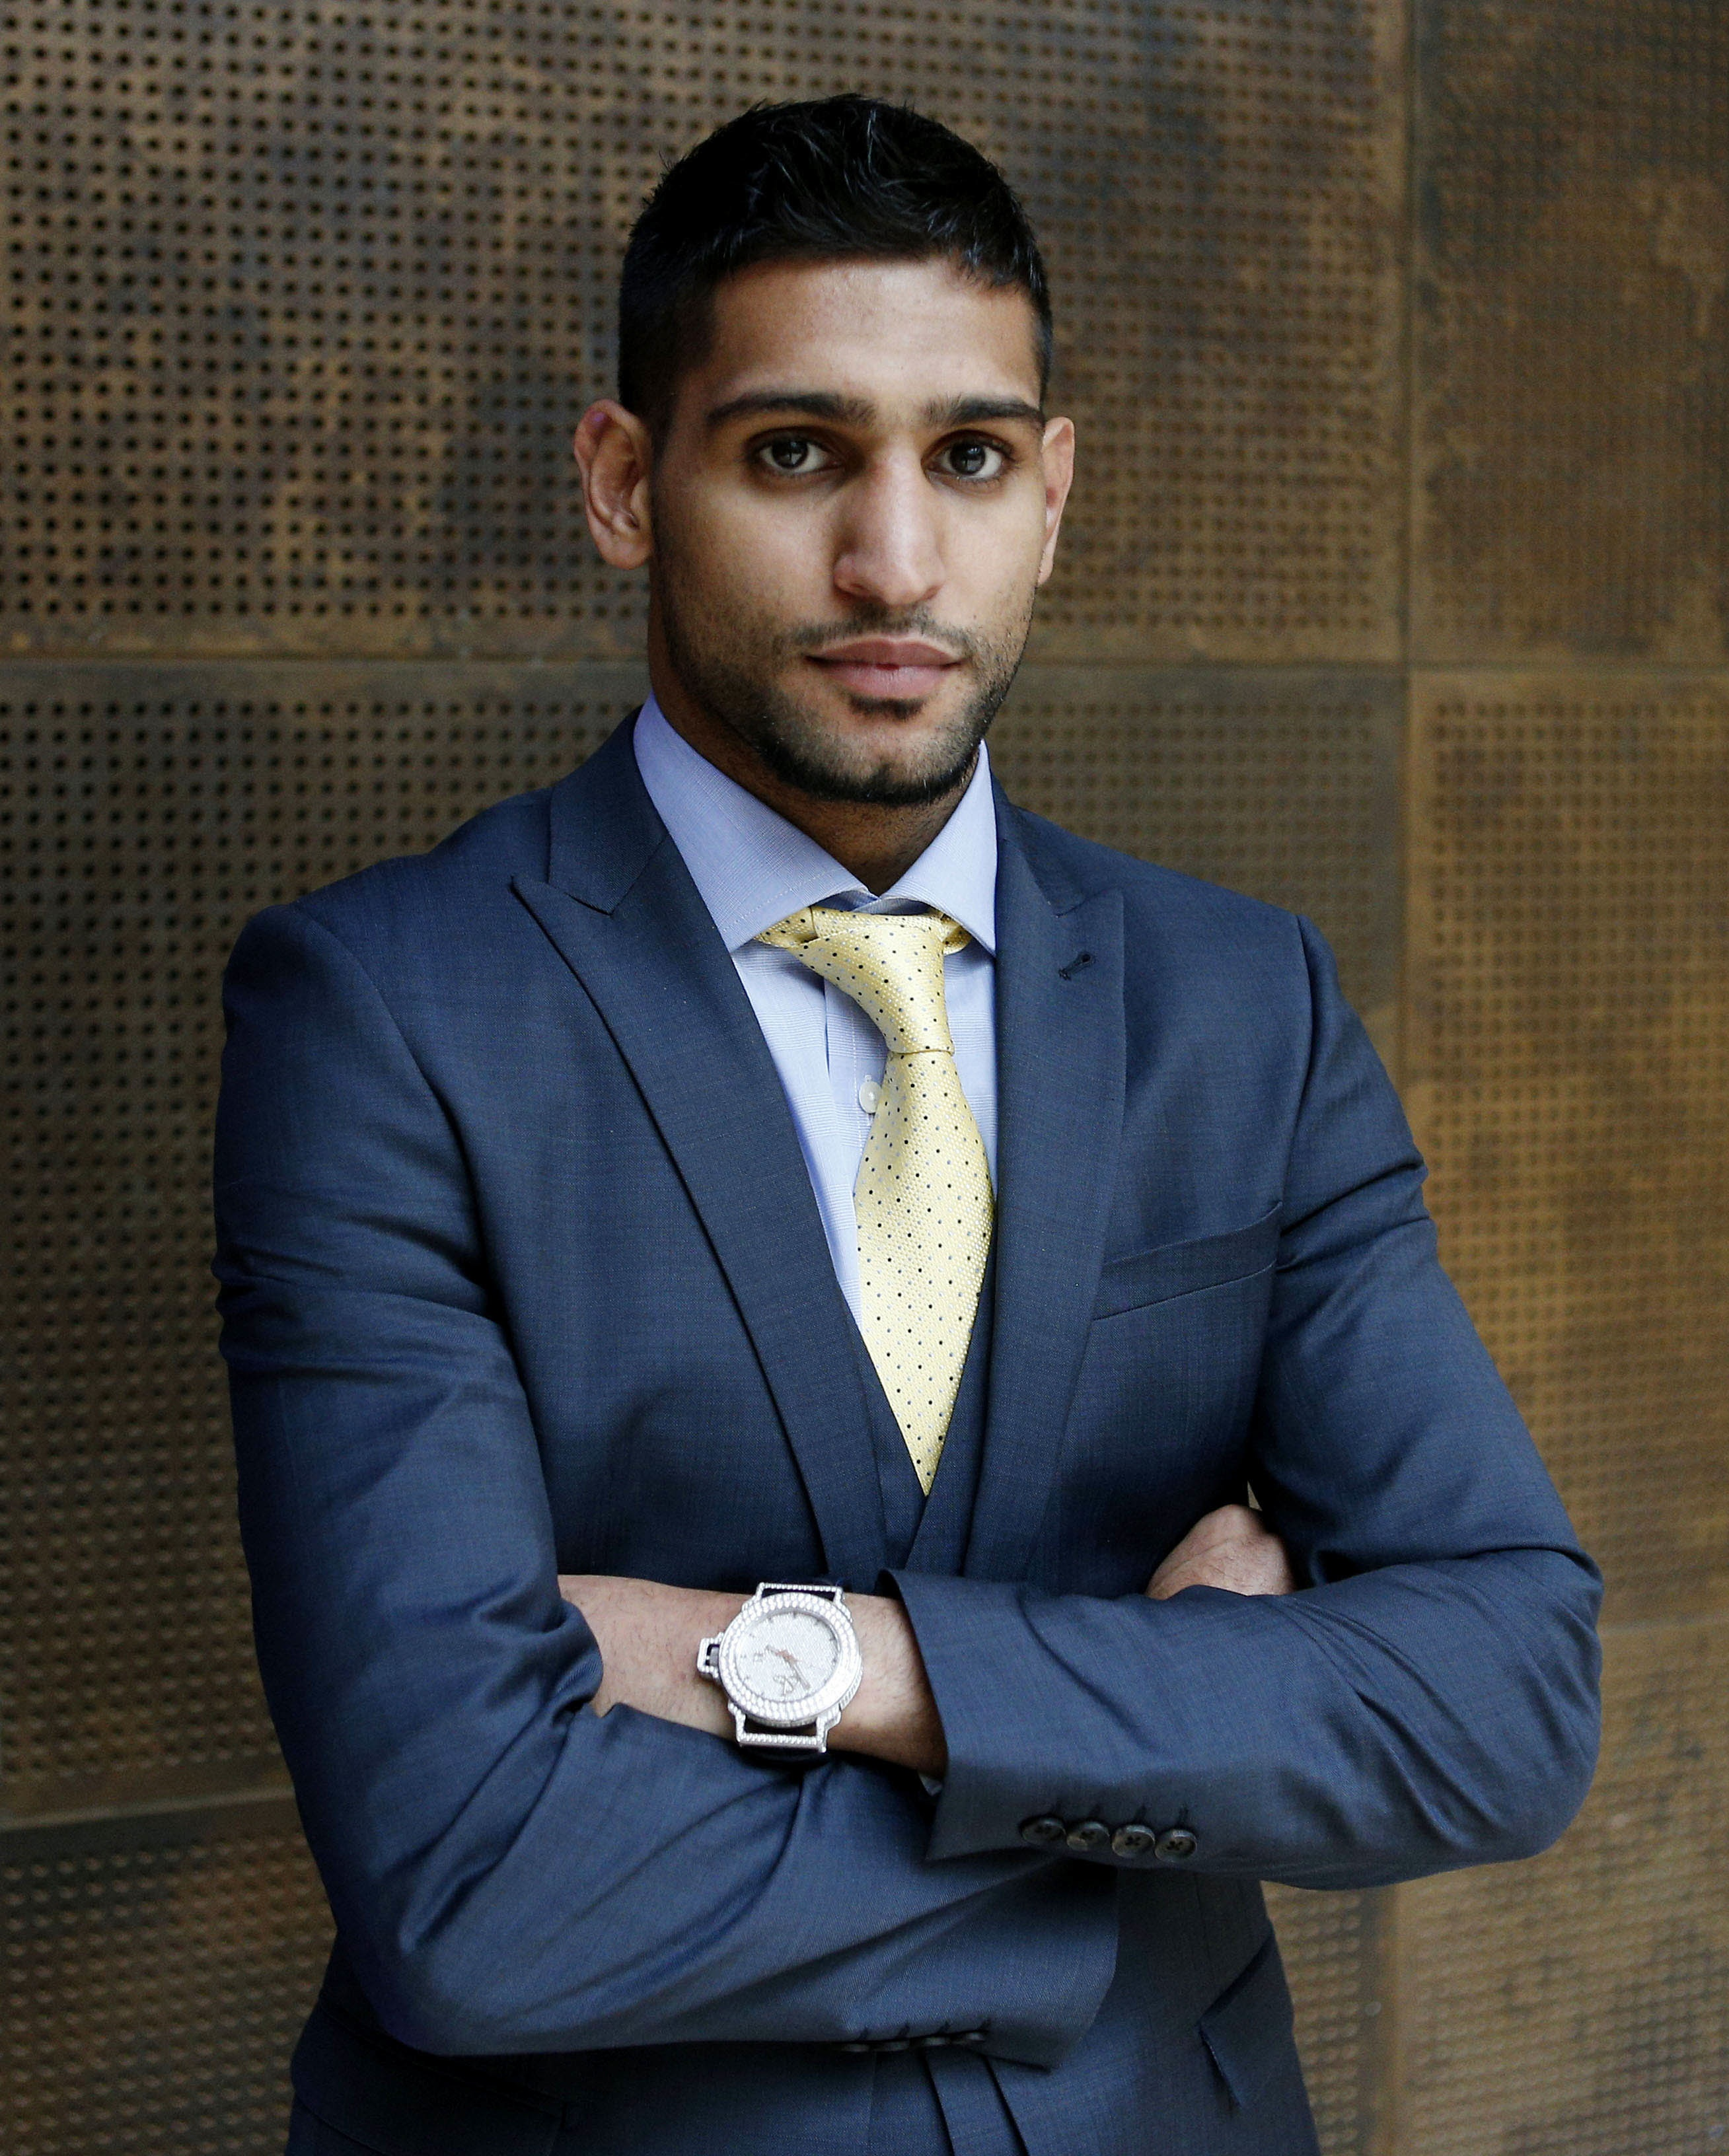 amir khan height weight age body measurement wife dob